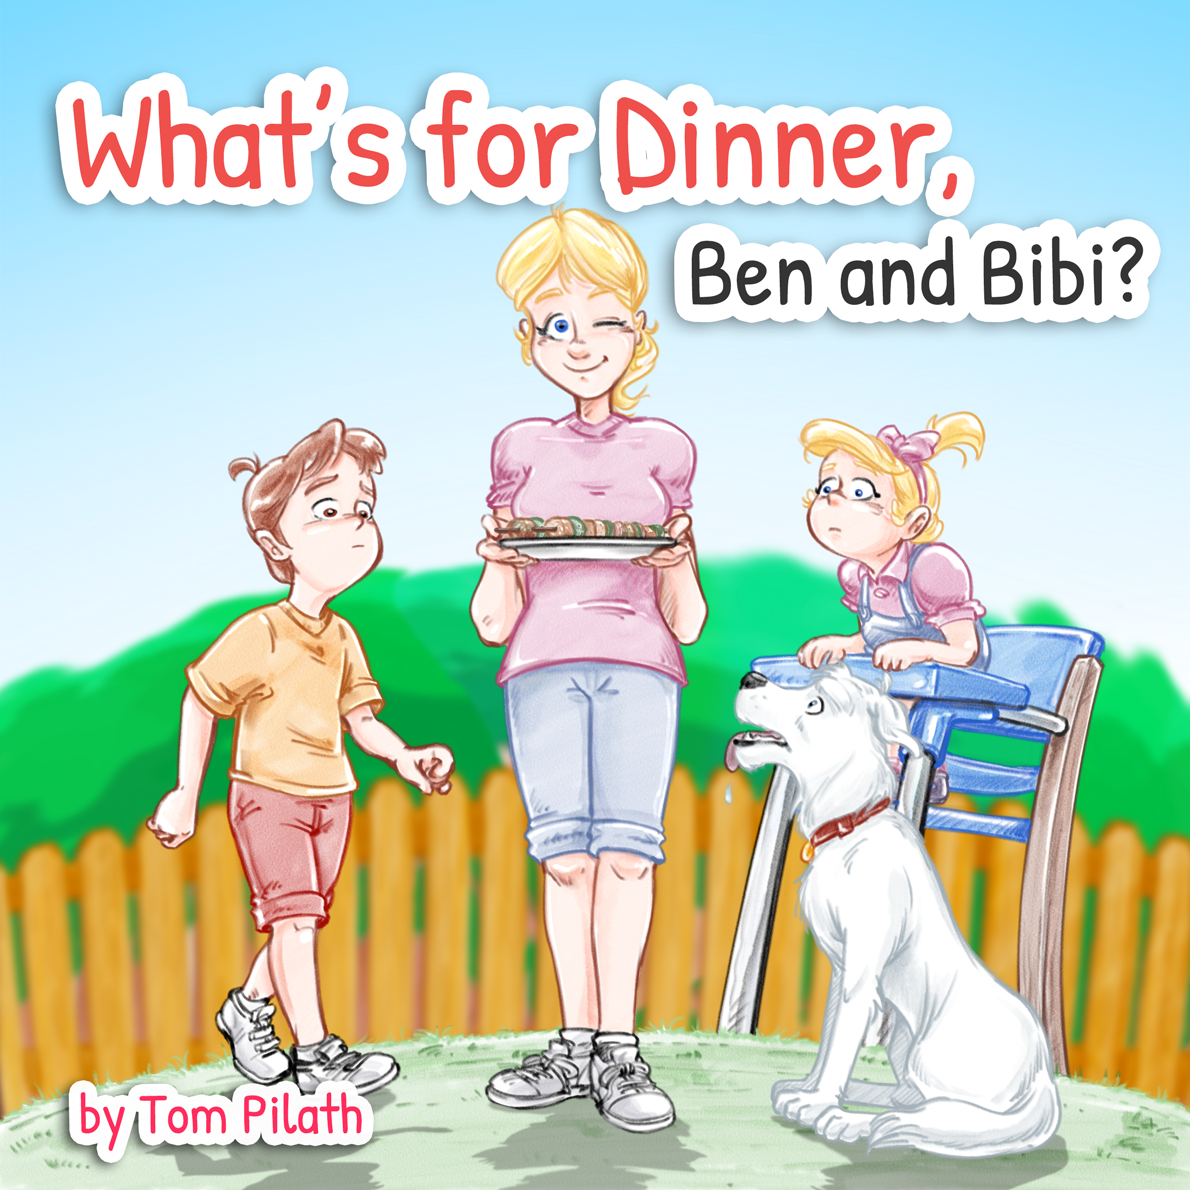 What's for Dinner, Ben and Bibi?